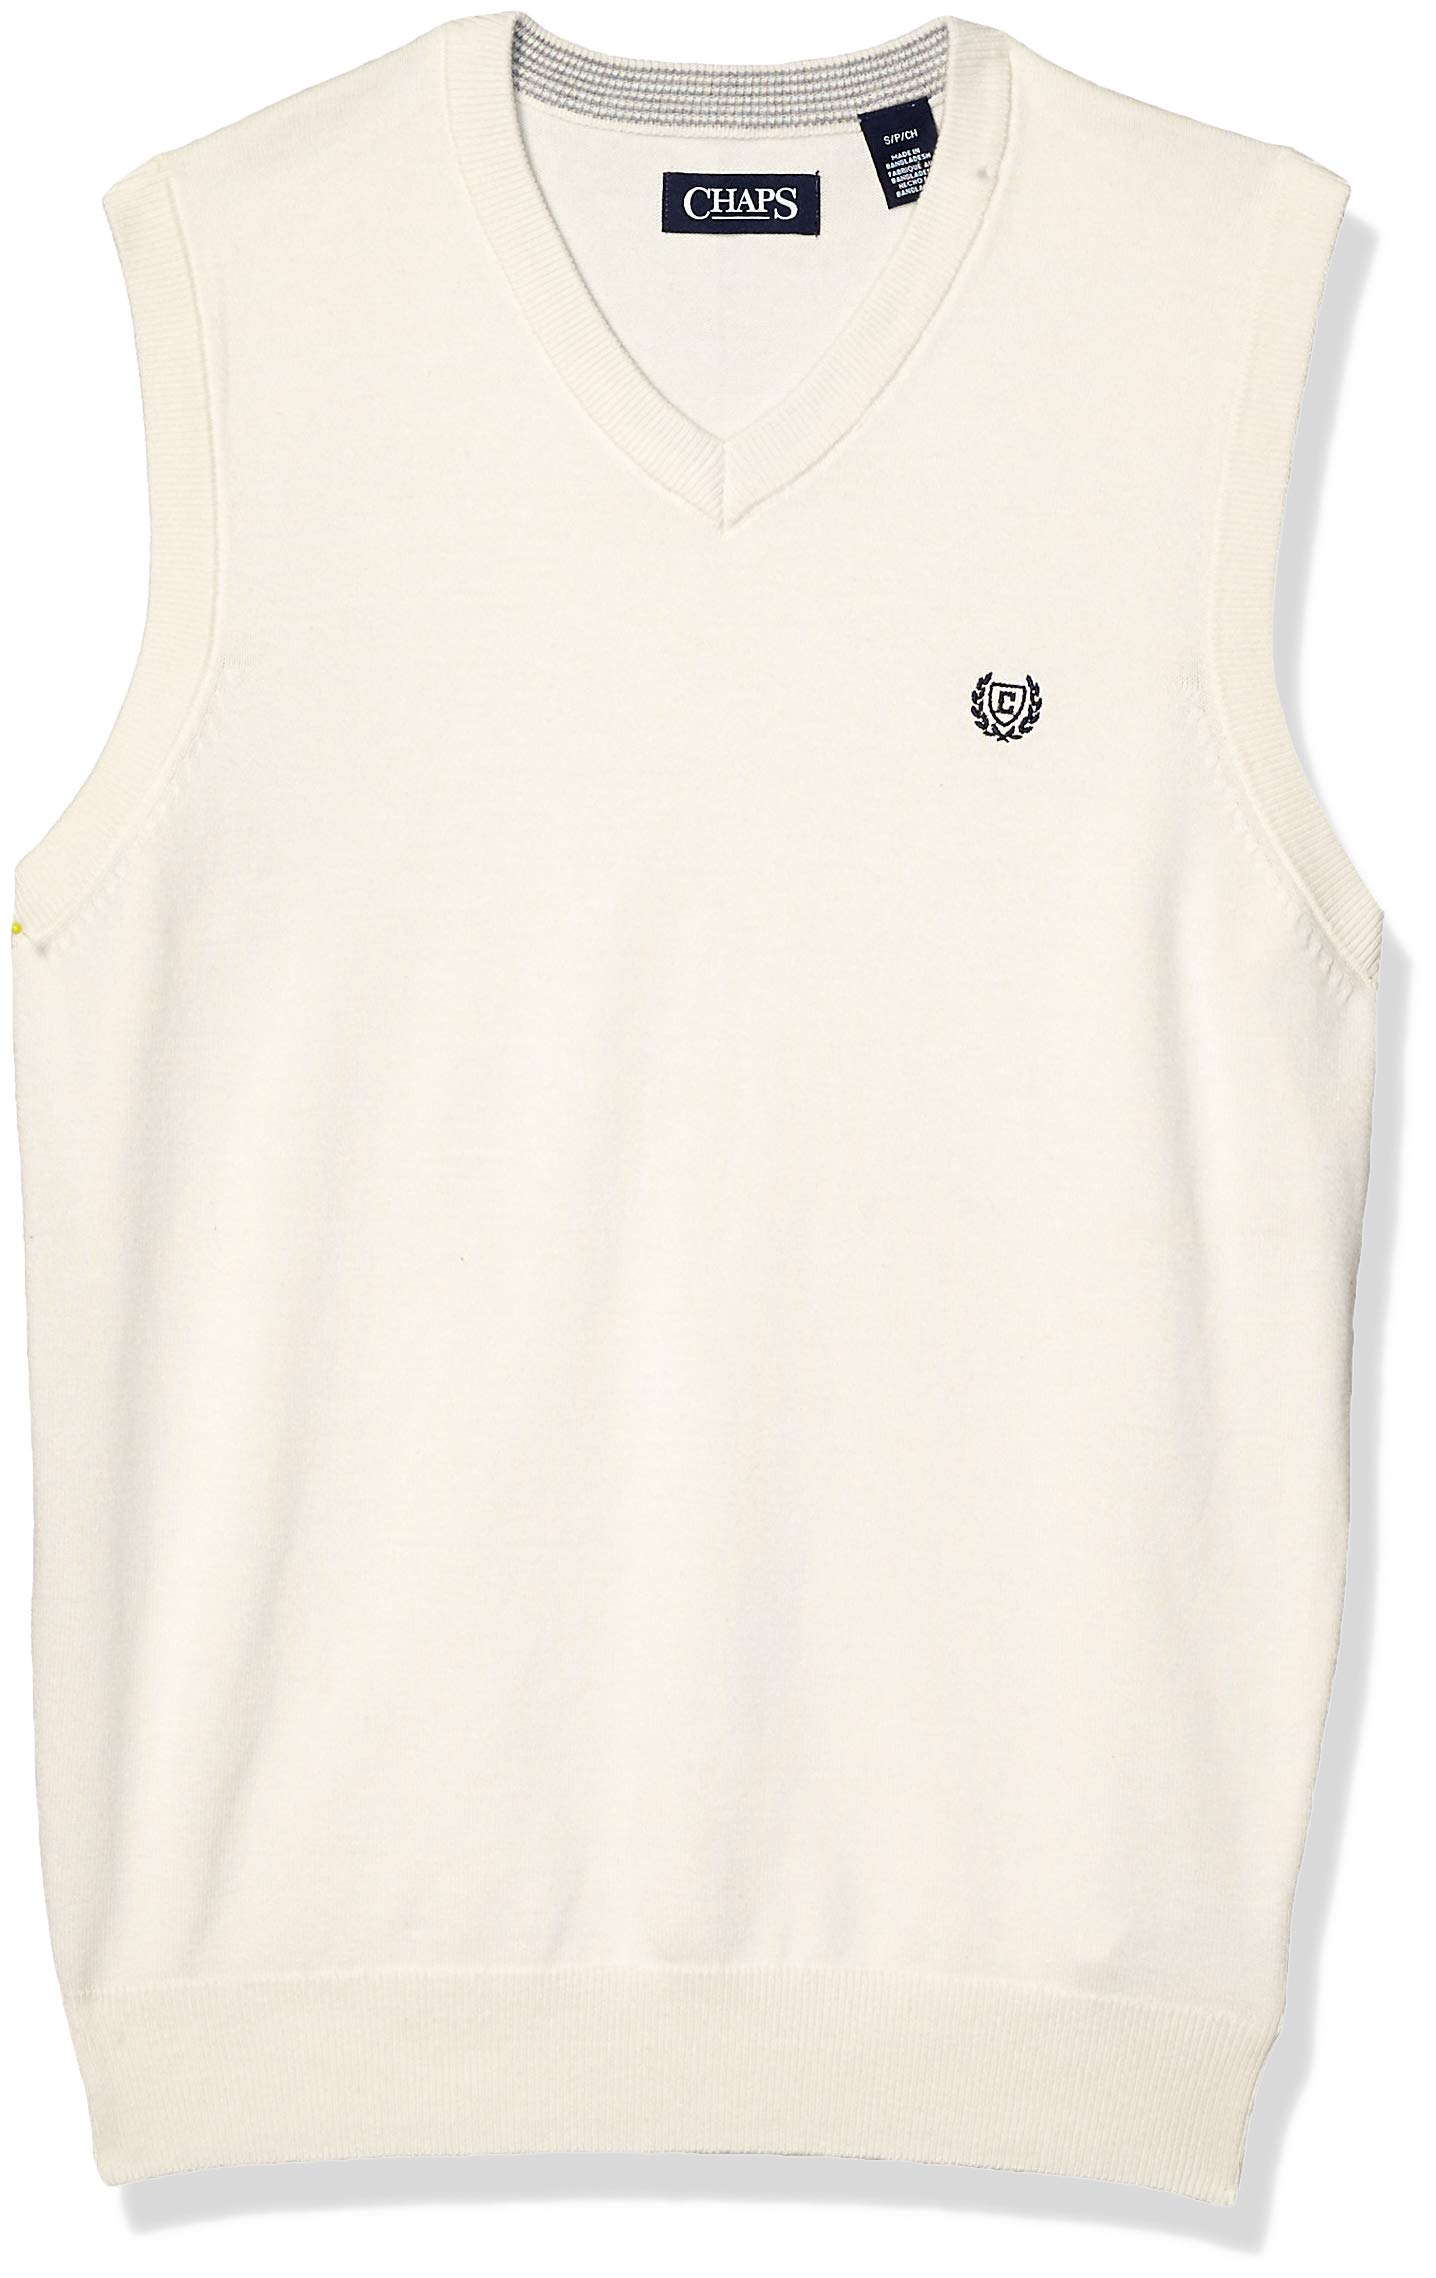 Chaps Men's Cotton V-Neck Sweater Vest, Essex Cream, L by Chaps